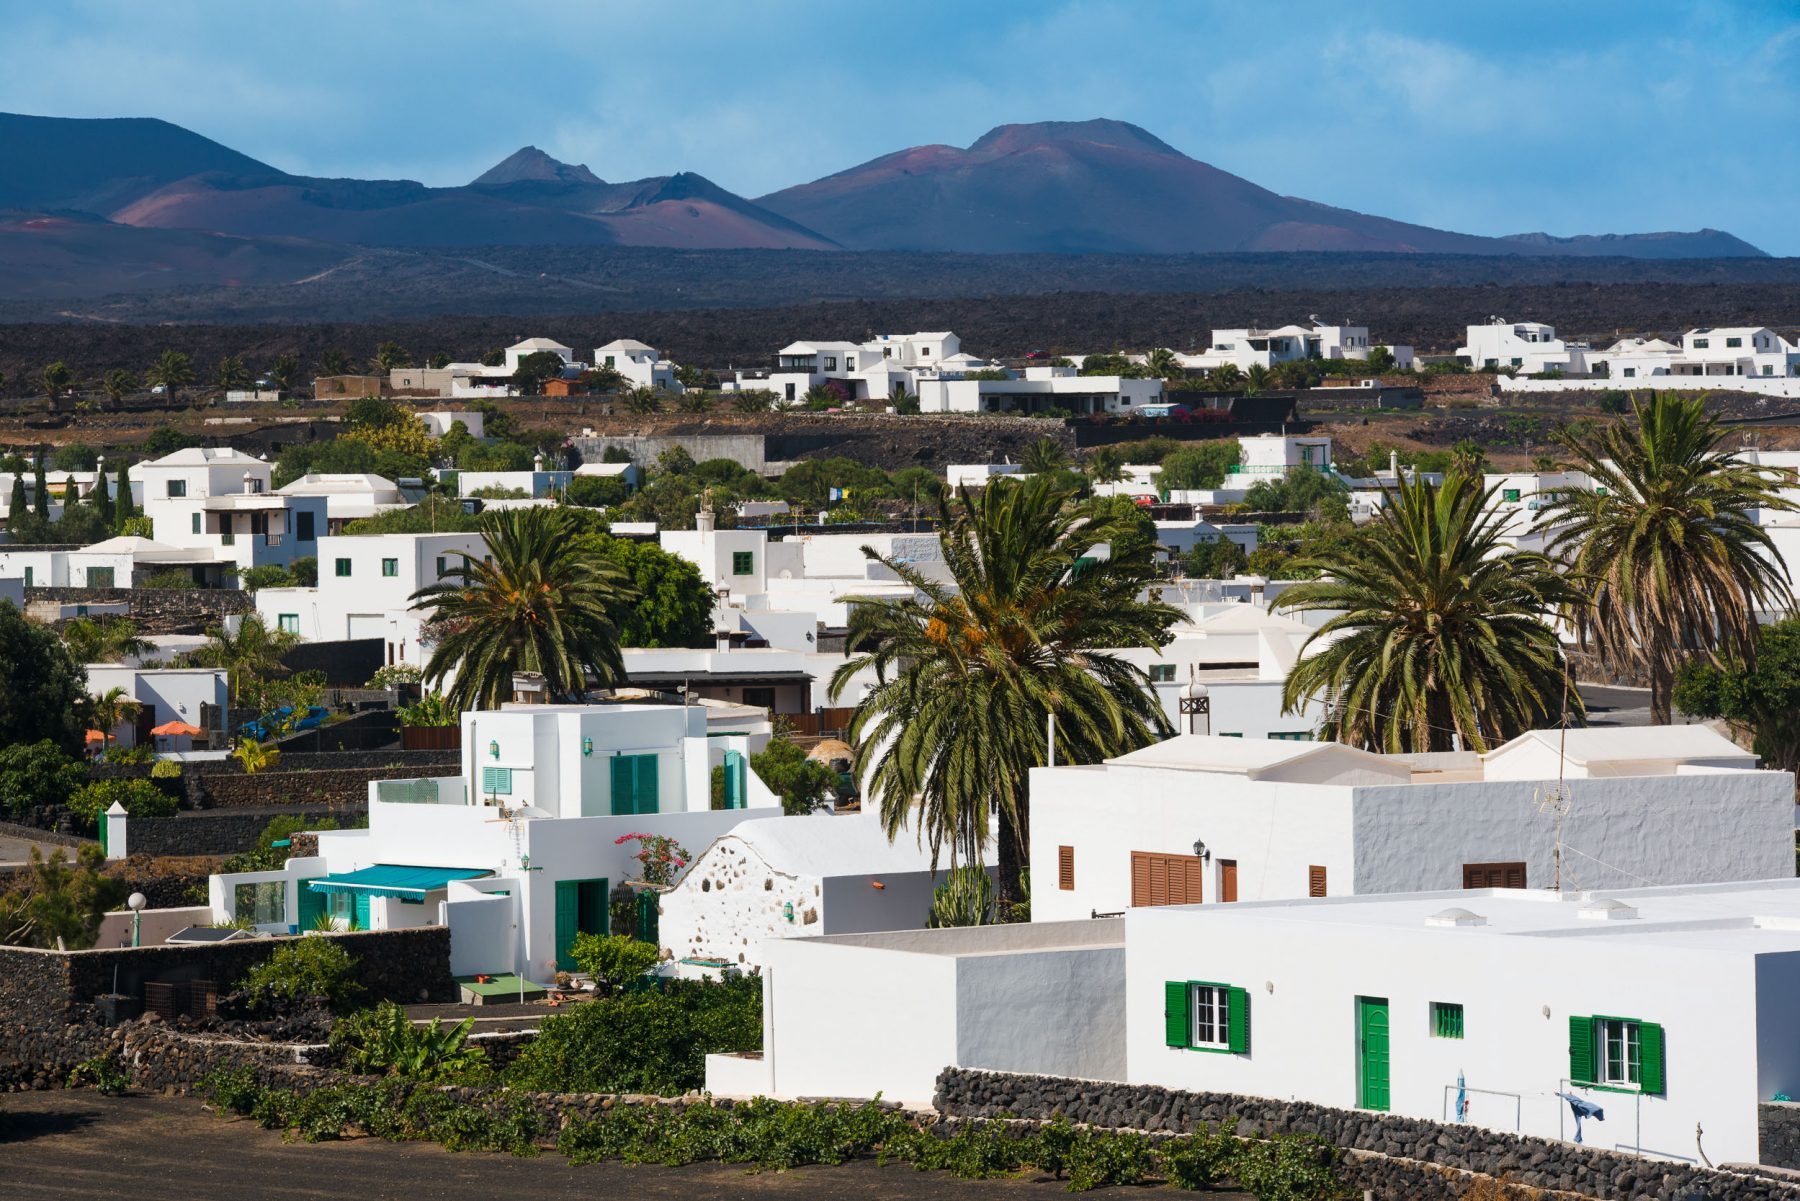 Image Article Yaiza Village - Tourism in Lanzarote